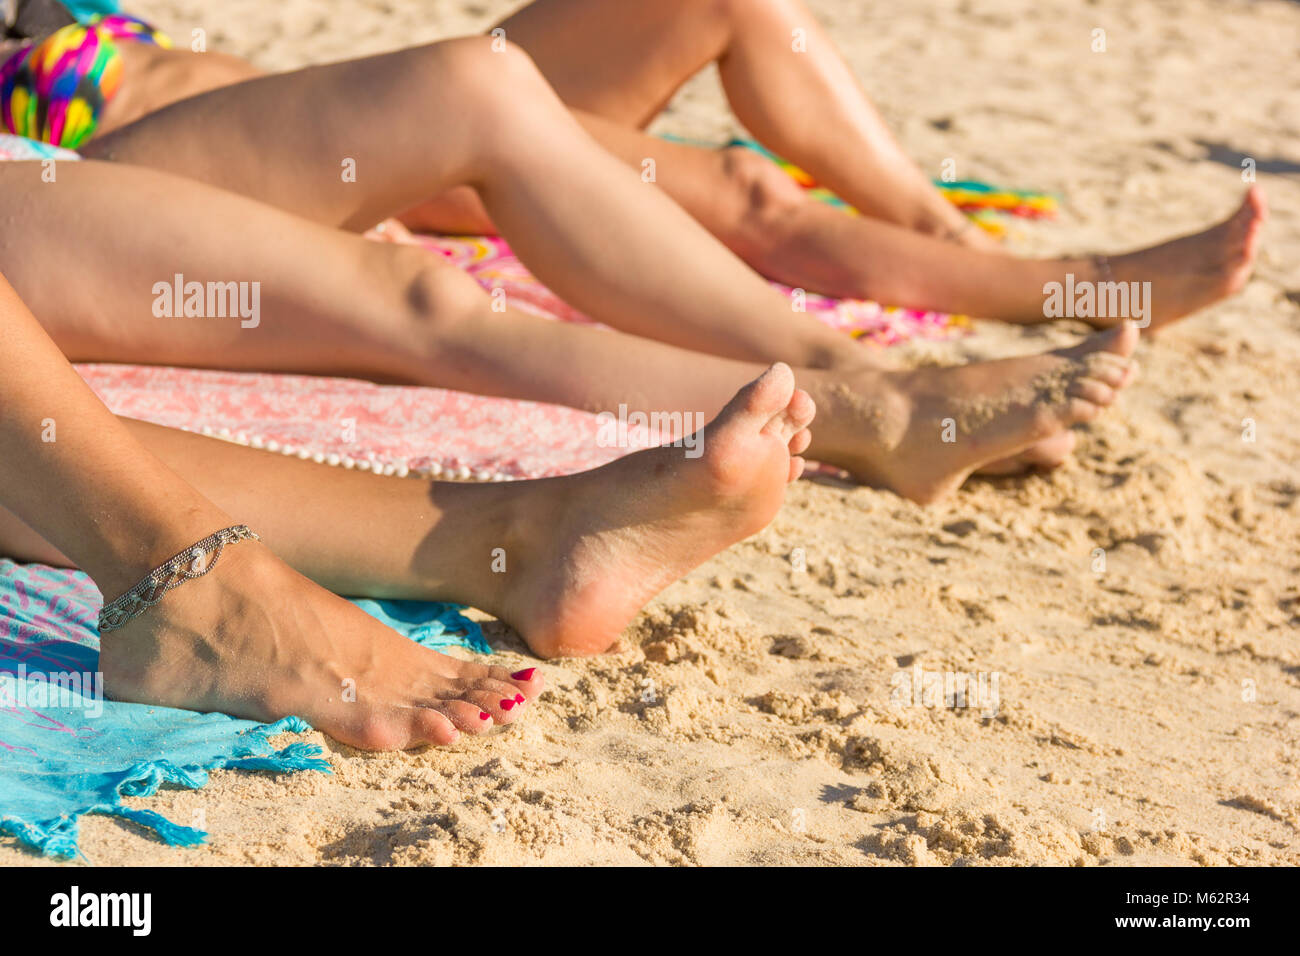 Feet and legs of three women sunbathing on the beach in the island of Koh Phangan, Thailand. Sun protection, summer - Stock Image